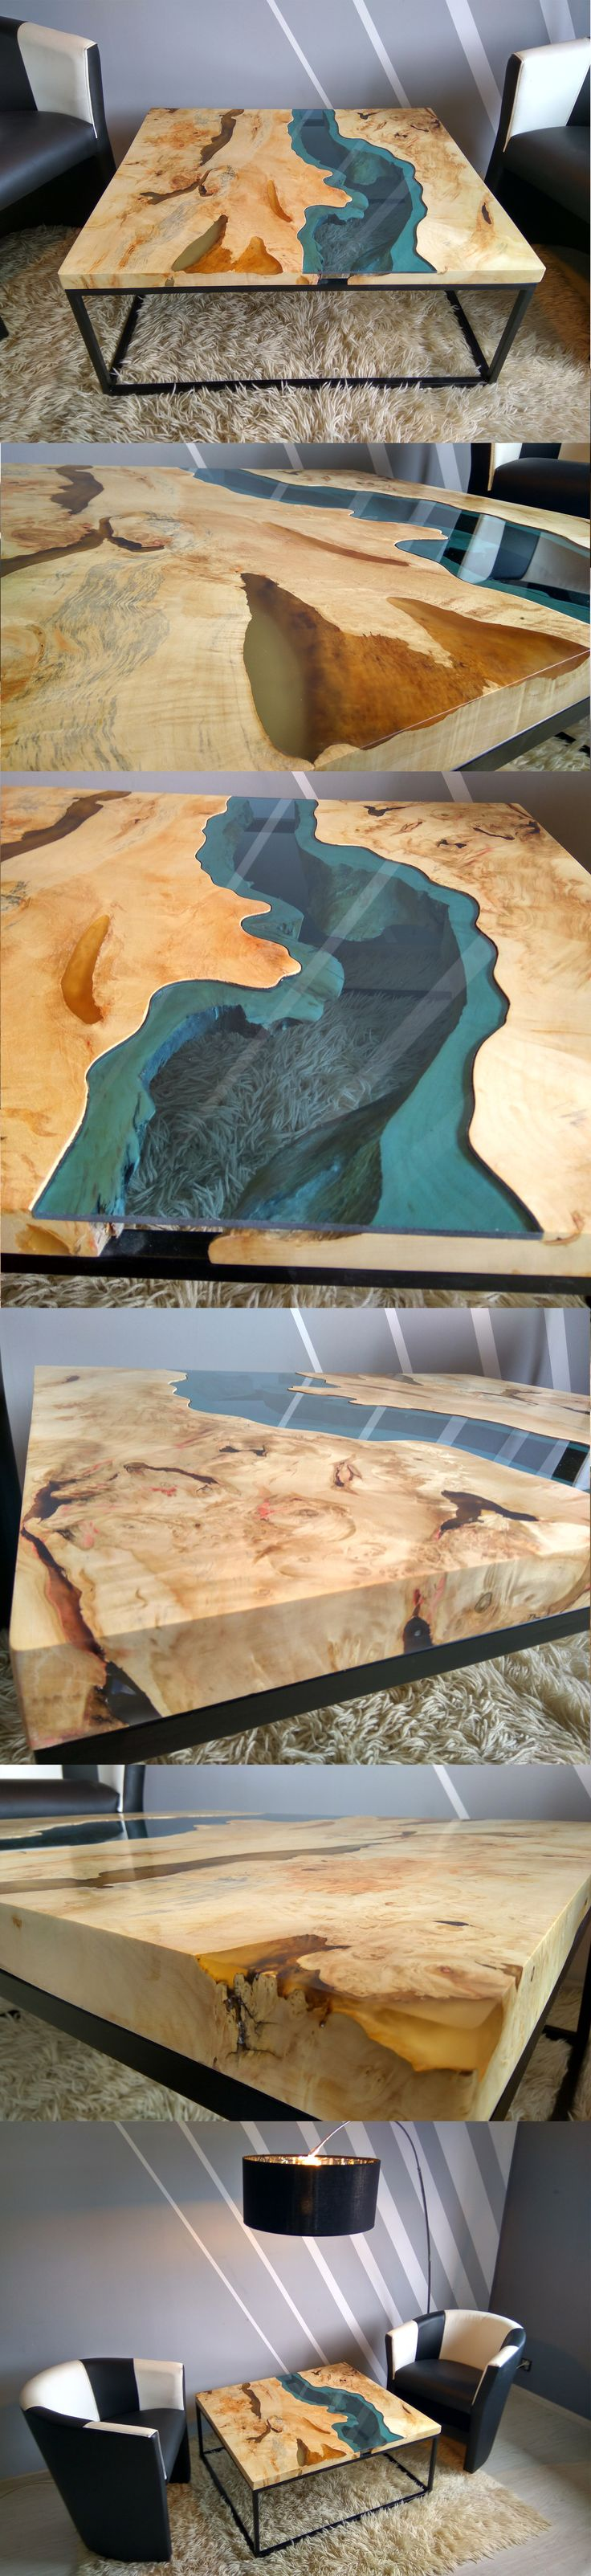 River coffee table made of old solid timber. Filled with transparent epoxy resin and blue transparent glass. Legs made of metal coated with mat black colour.  It's unique, one of a kind solid piece of wood. The unique combination of tree rings to bring out the effect of the variety of colors.  Dimensions: 98x84 cm and 40 cm height (centimeters) 38,5x33 in and 15,8 in height (inches)